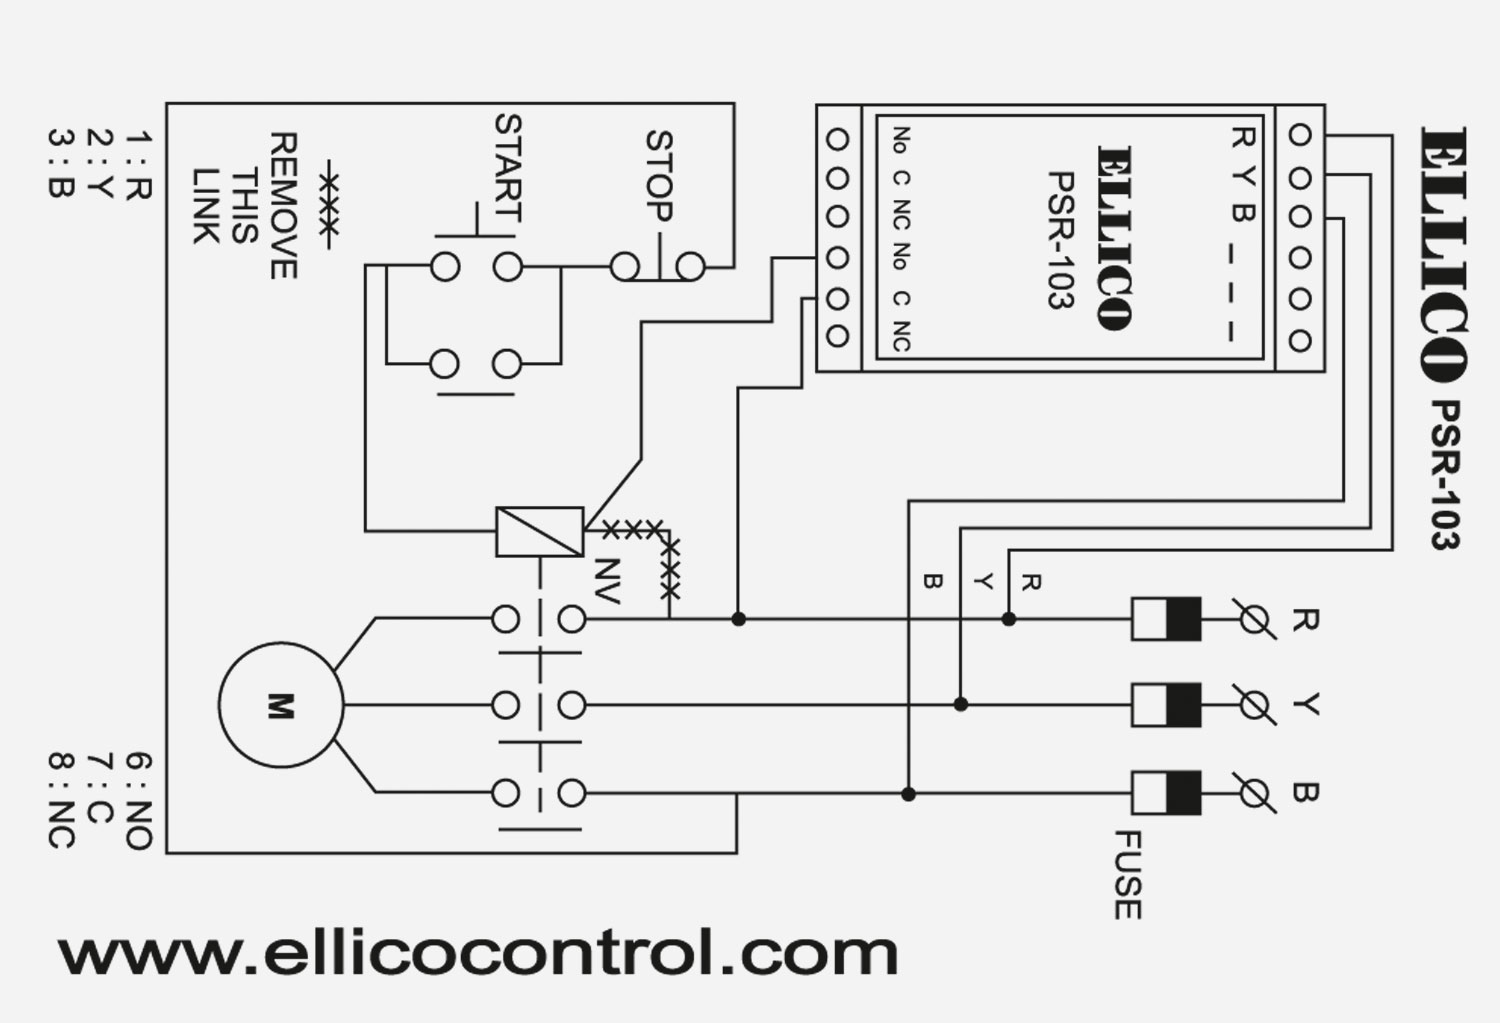 Mazda B2600 Fuse Box Diagram Auto Electrical Wiring 1988 Related With